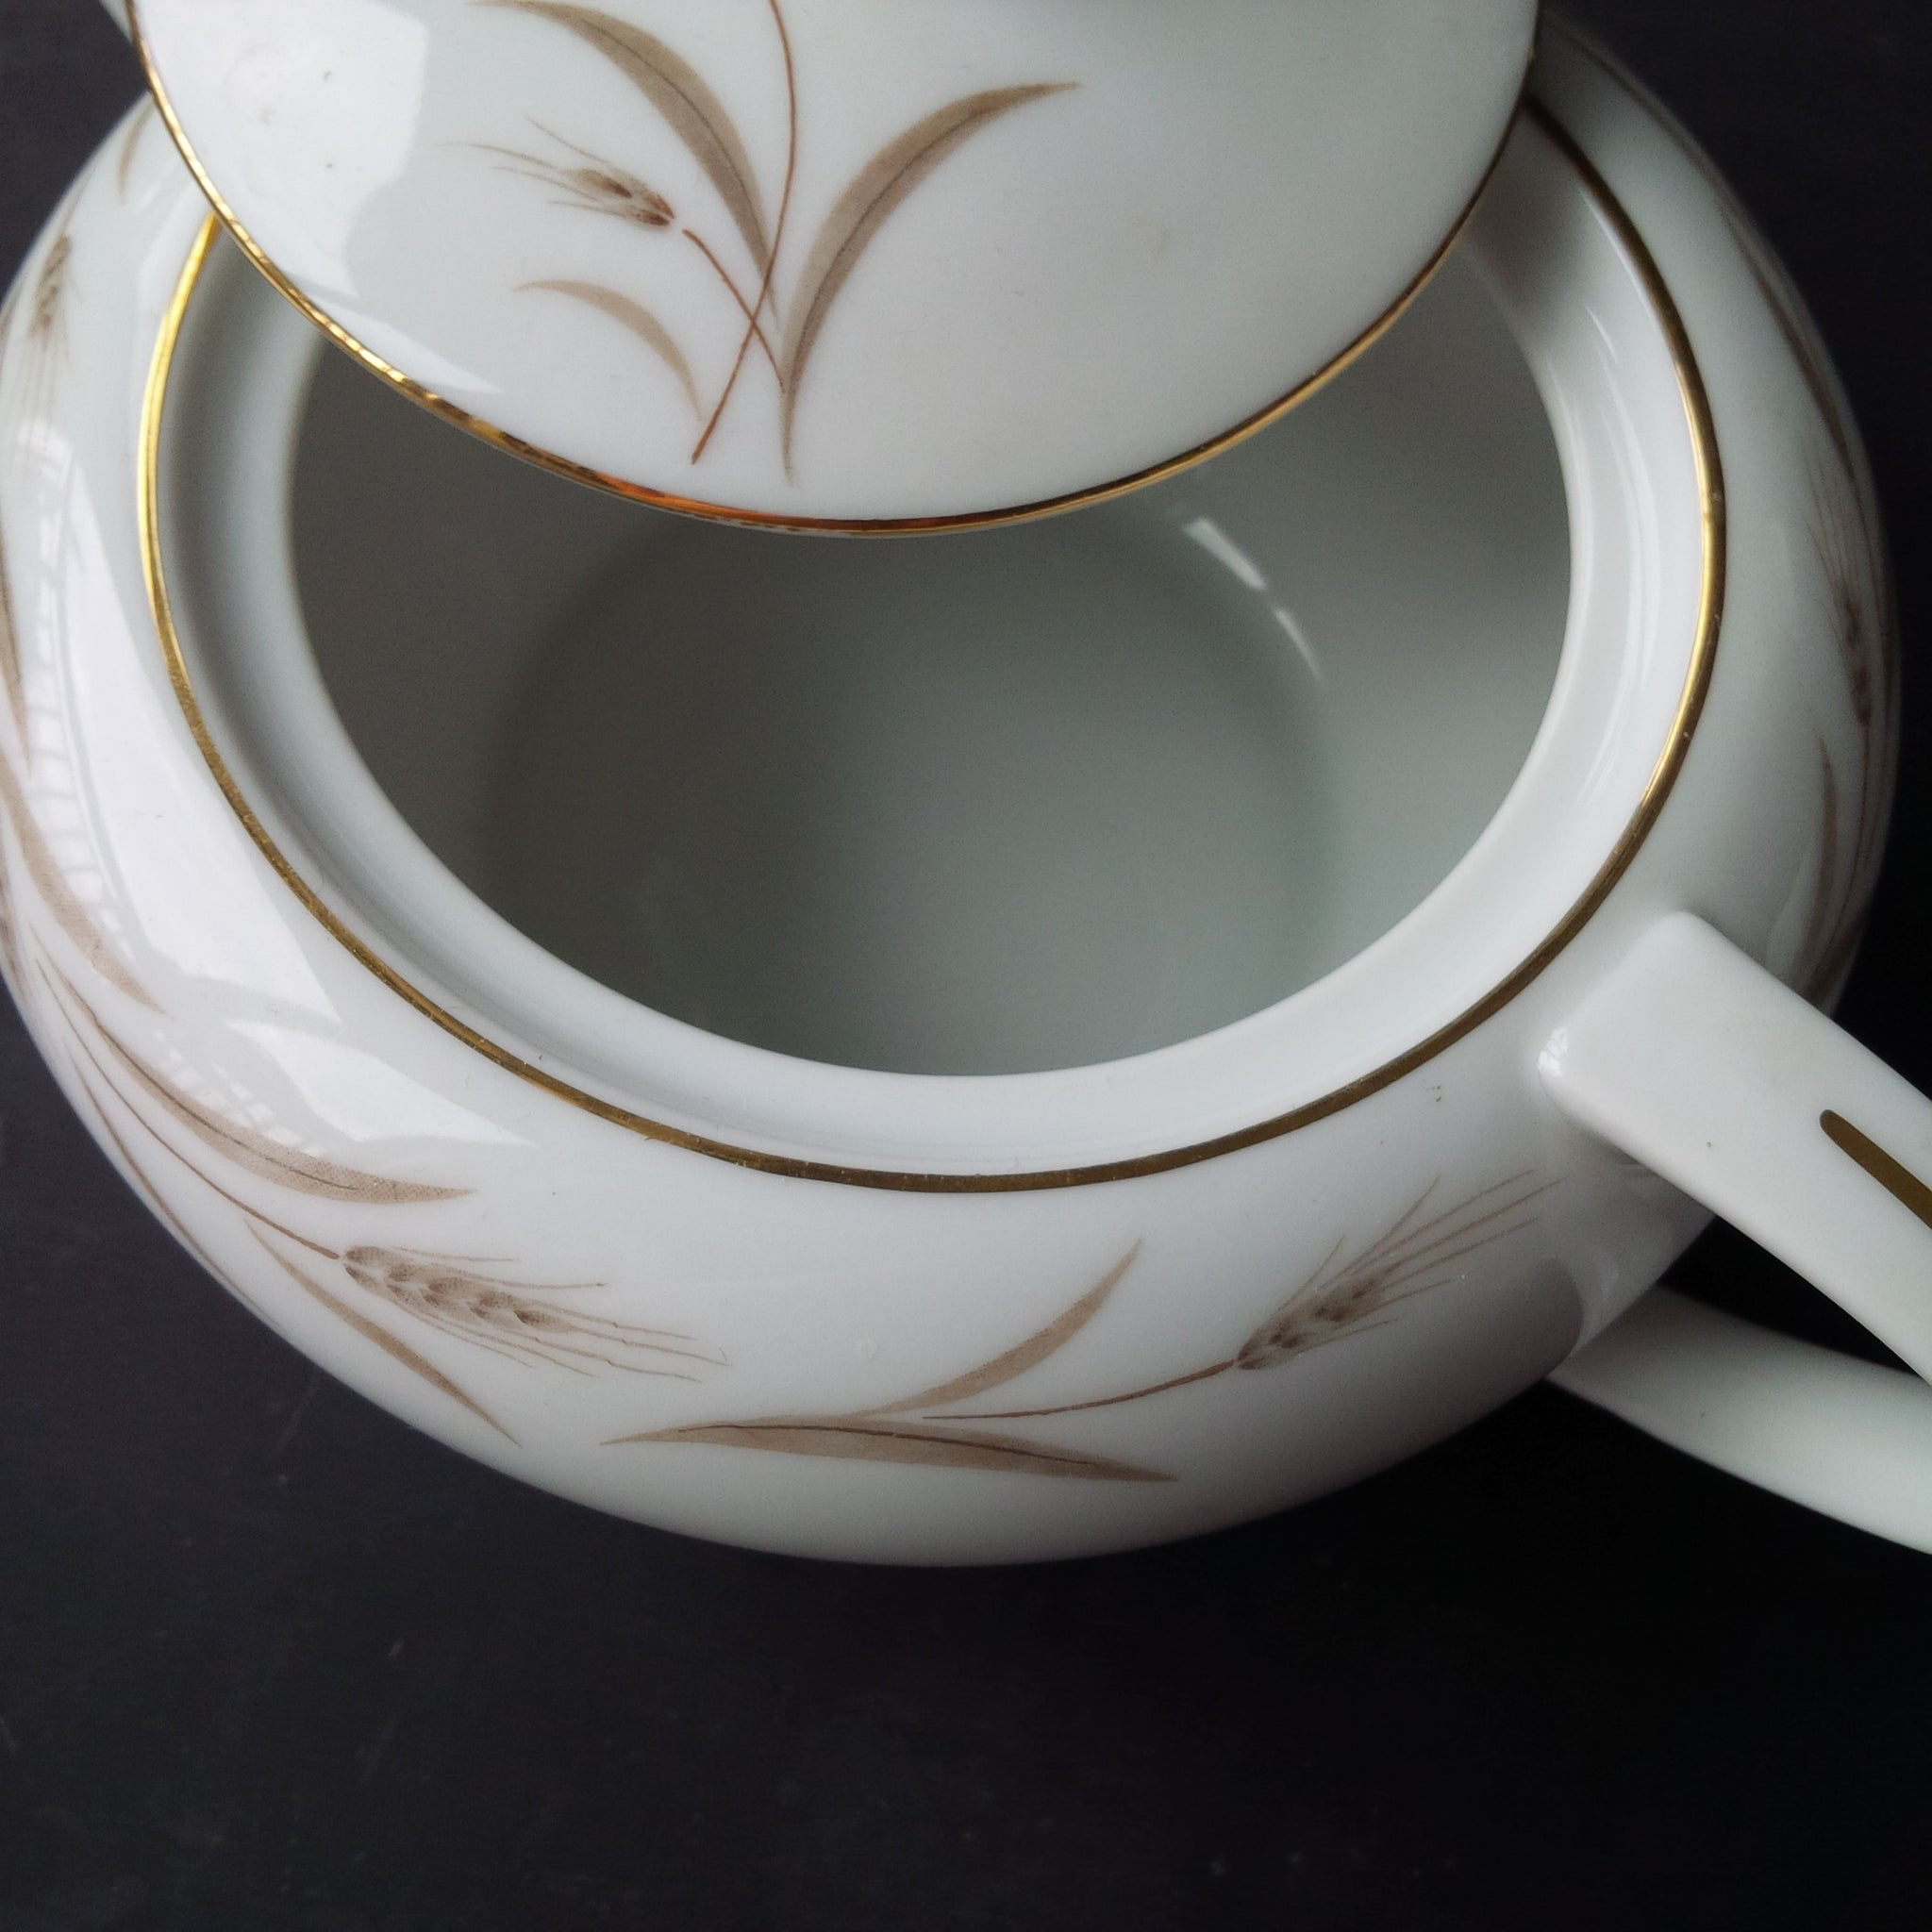 Vintage Sugar Bowl & Creamer Set - Wheat Pattern by Fine China of Japan